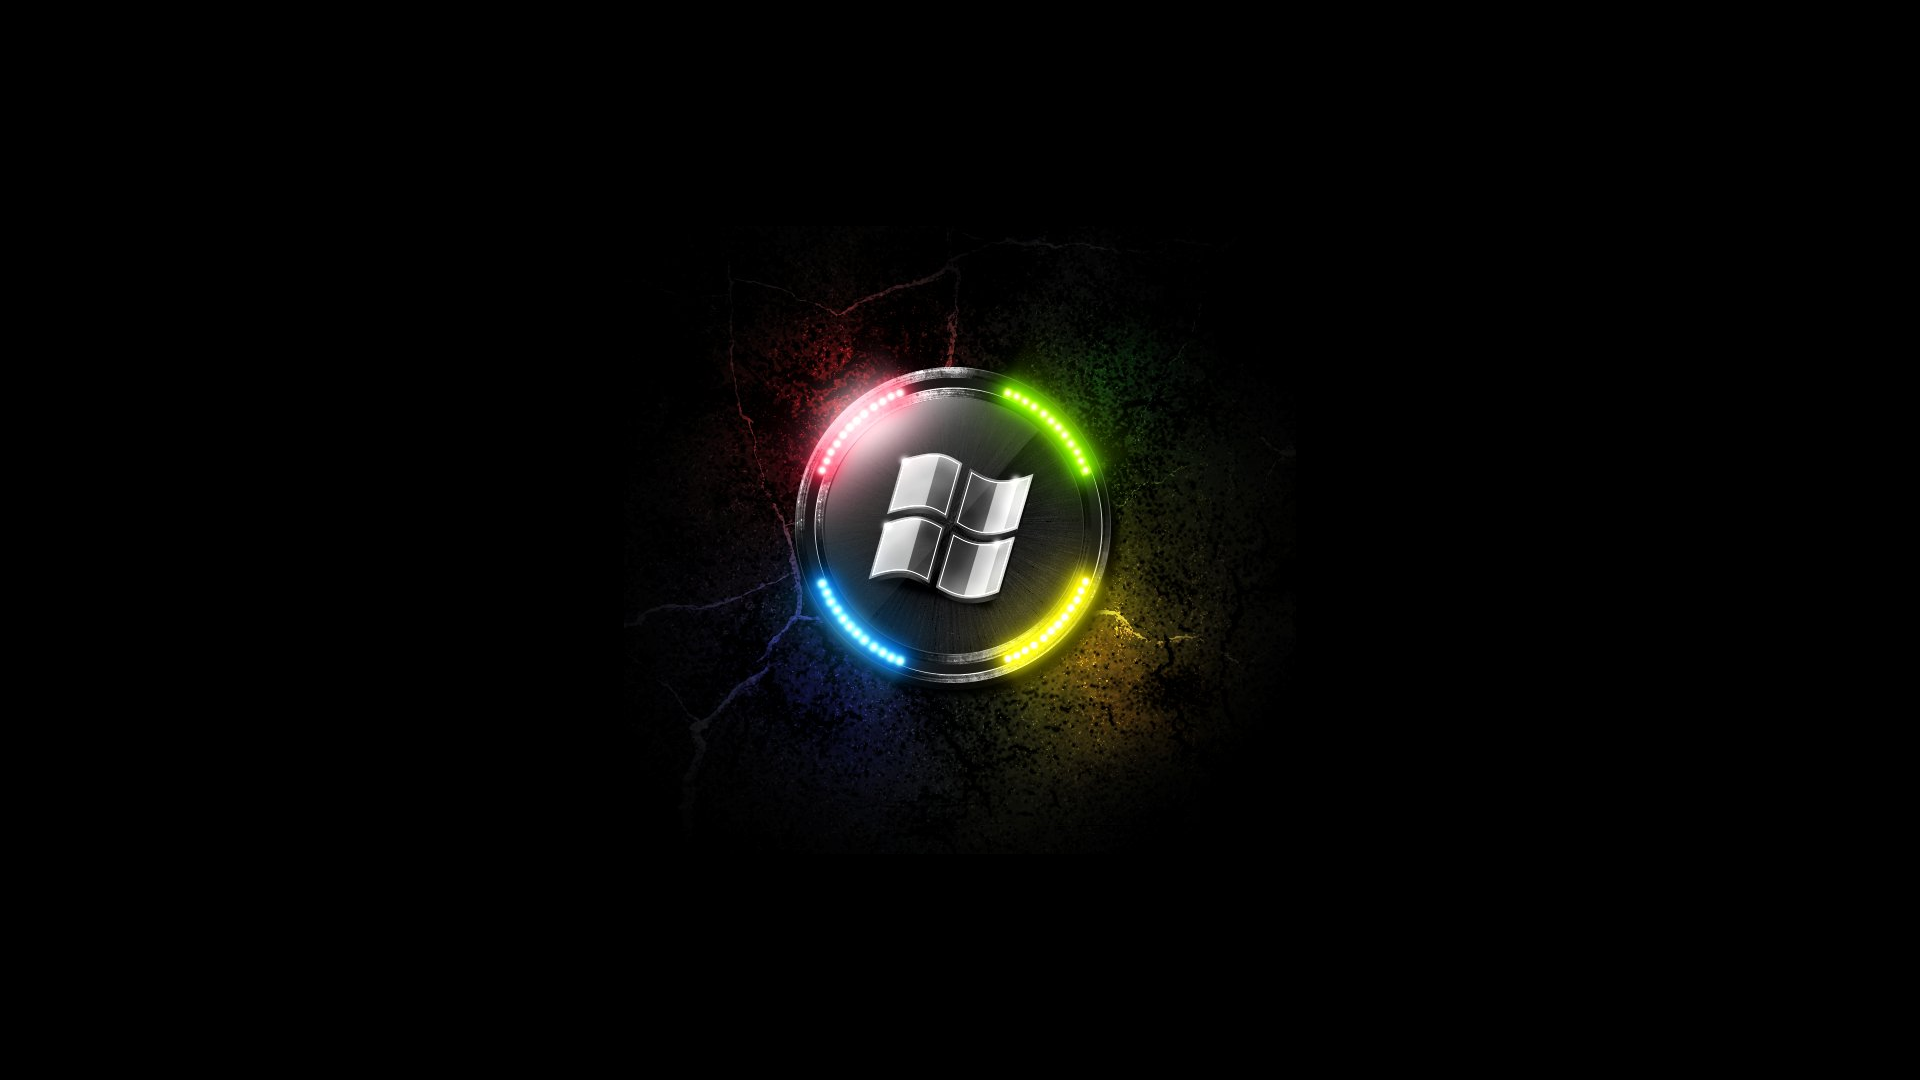 cool apple logos hd. cool apple logo desktop - bing images logos hd p